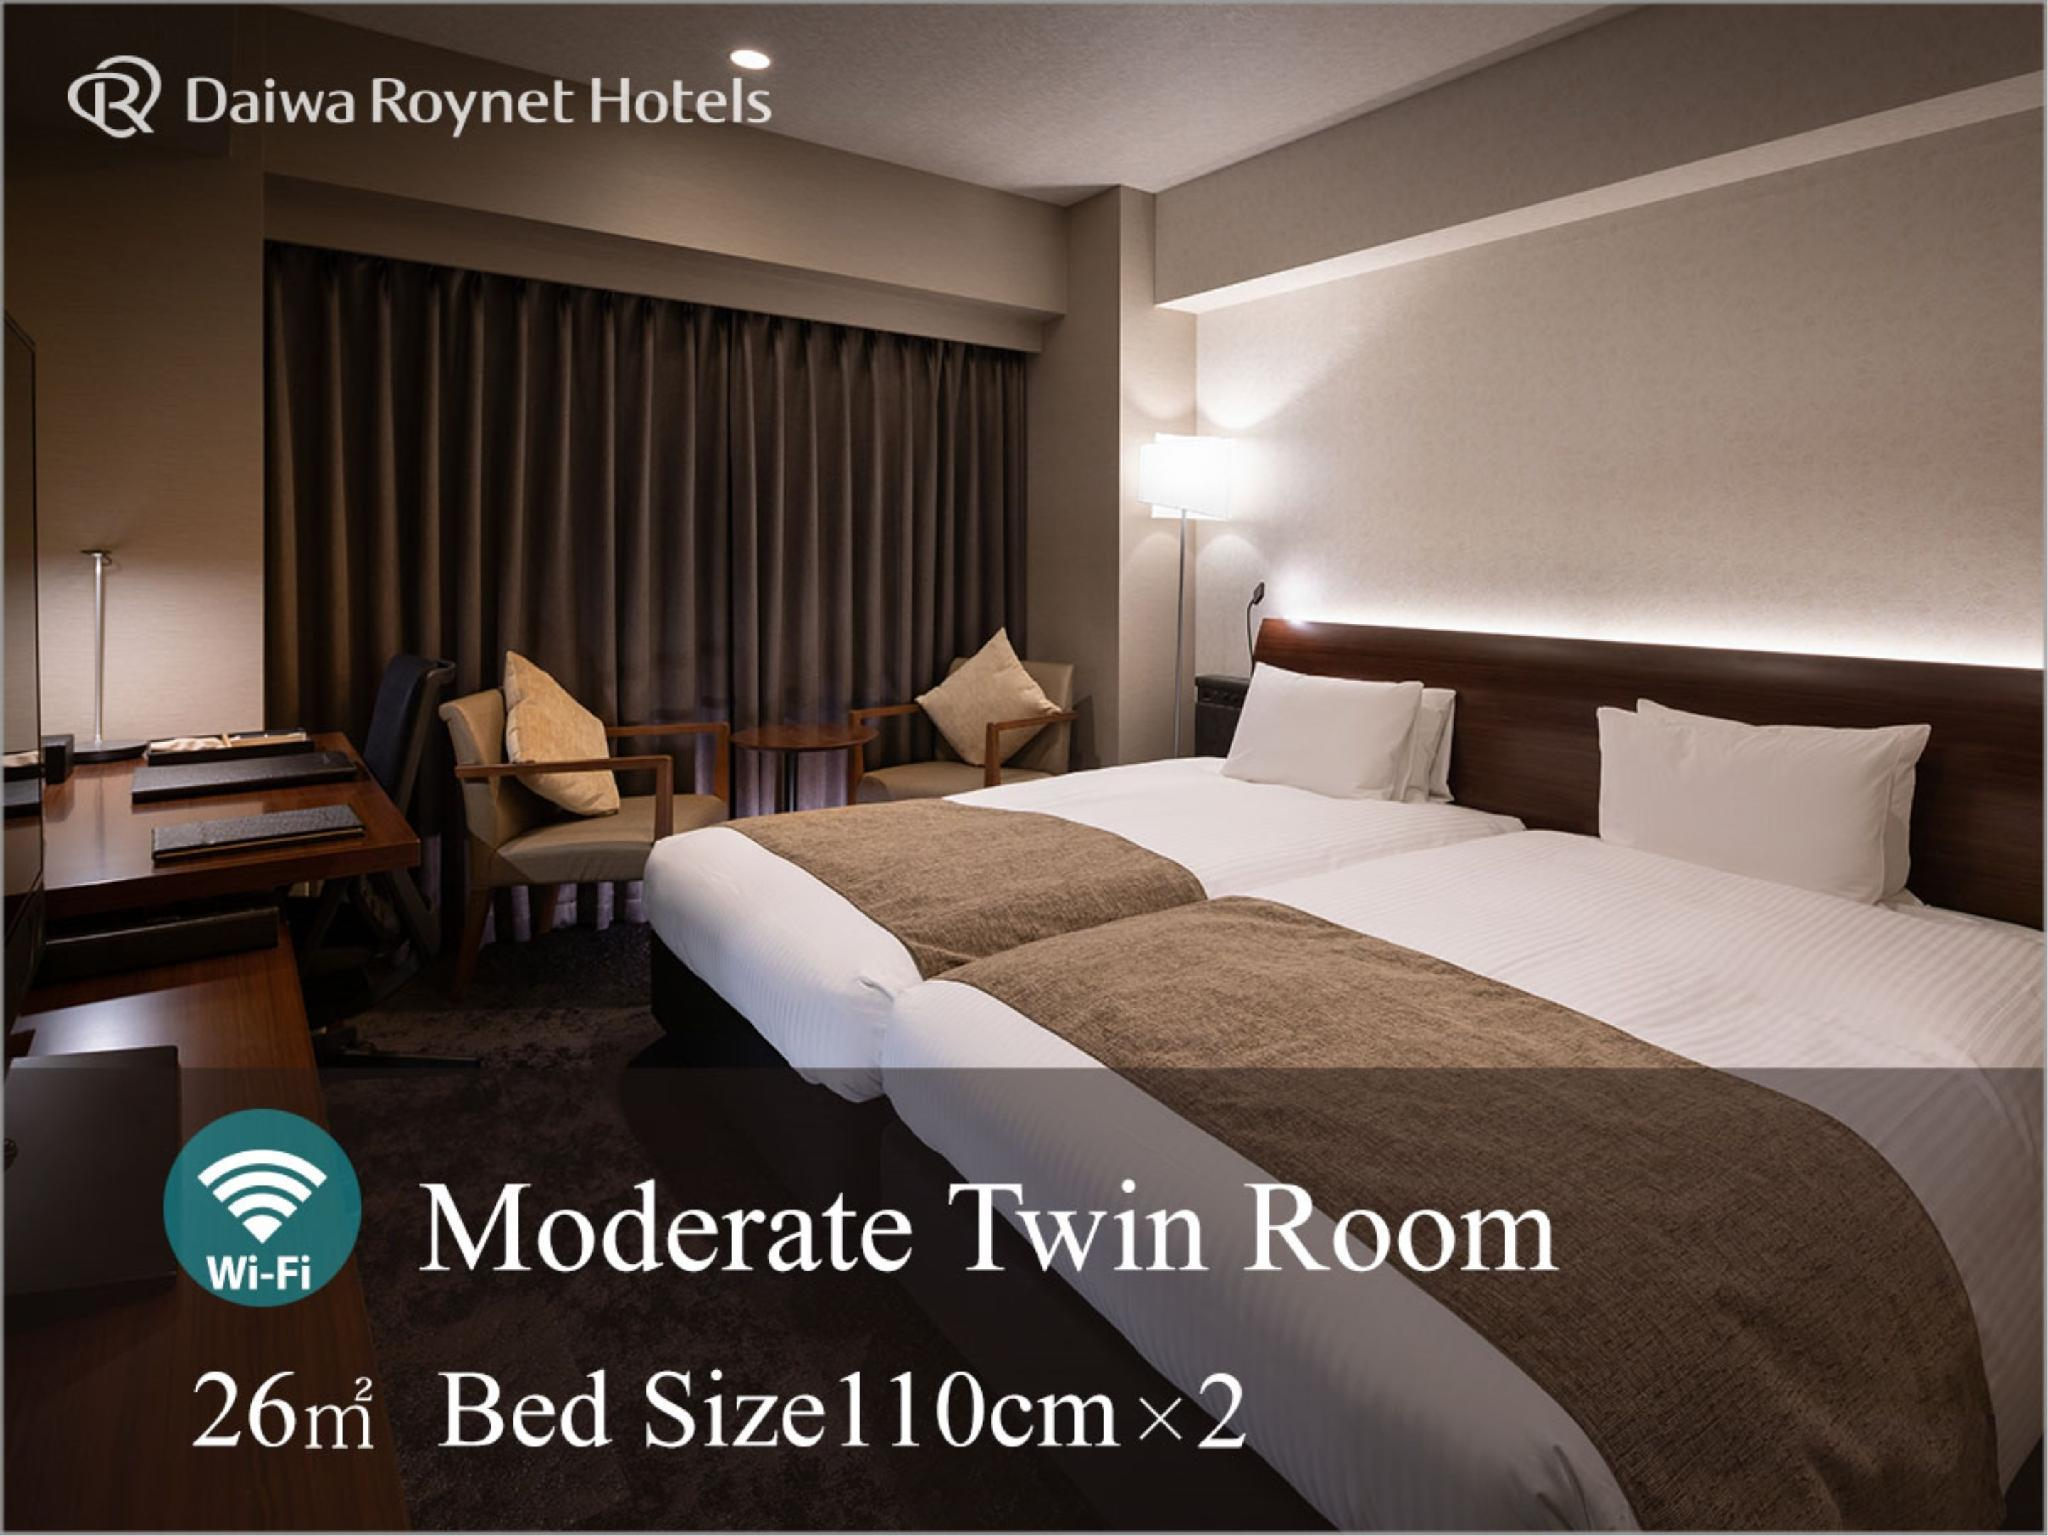 Moderate Twin Room